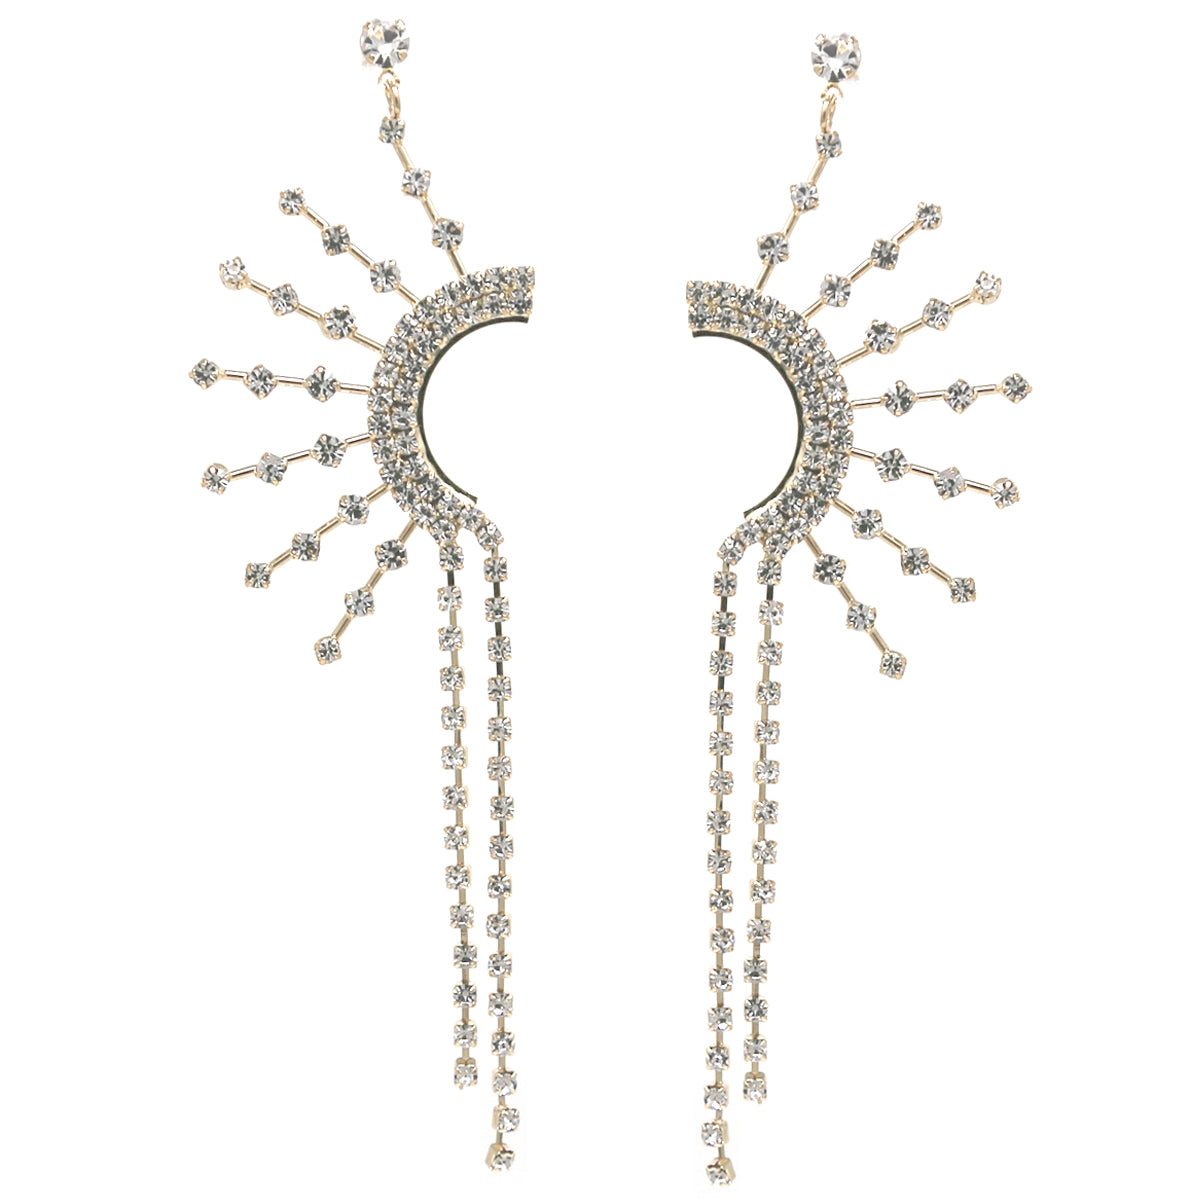 Glass Stone Pave Sunburst Fringe Drop Earrings